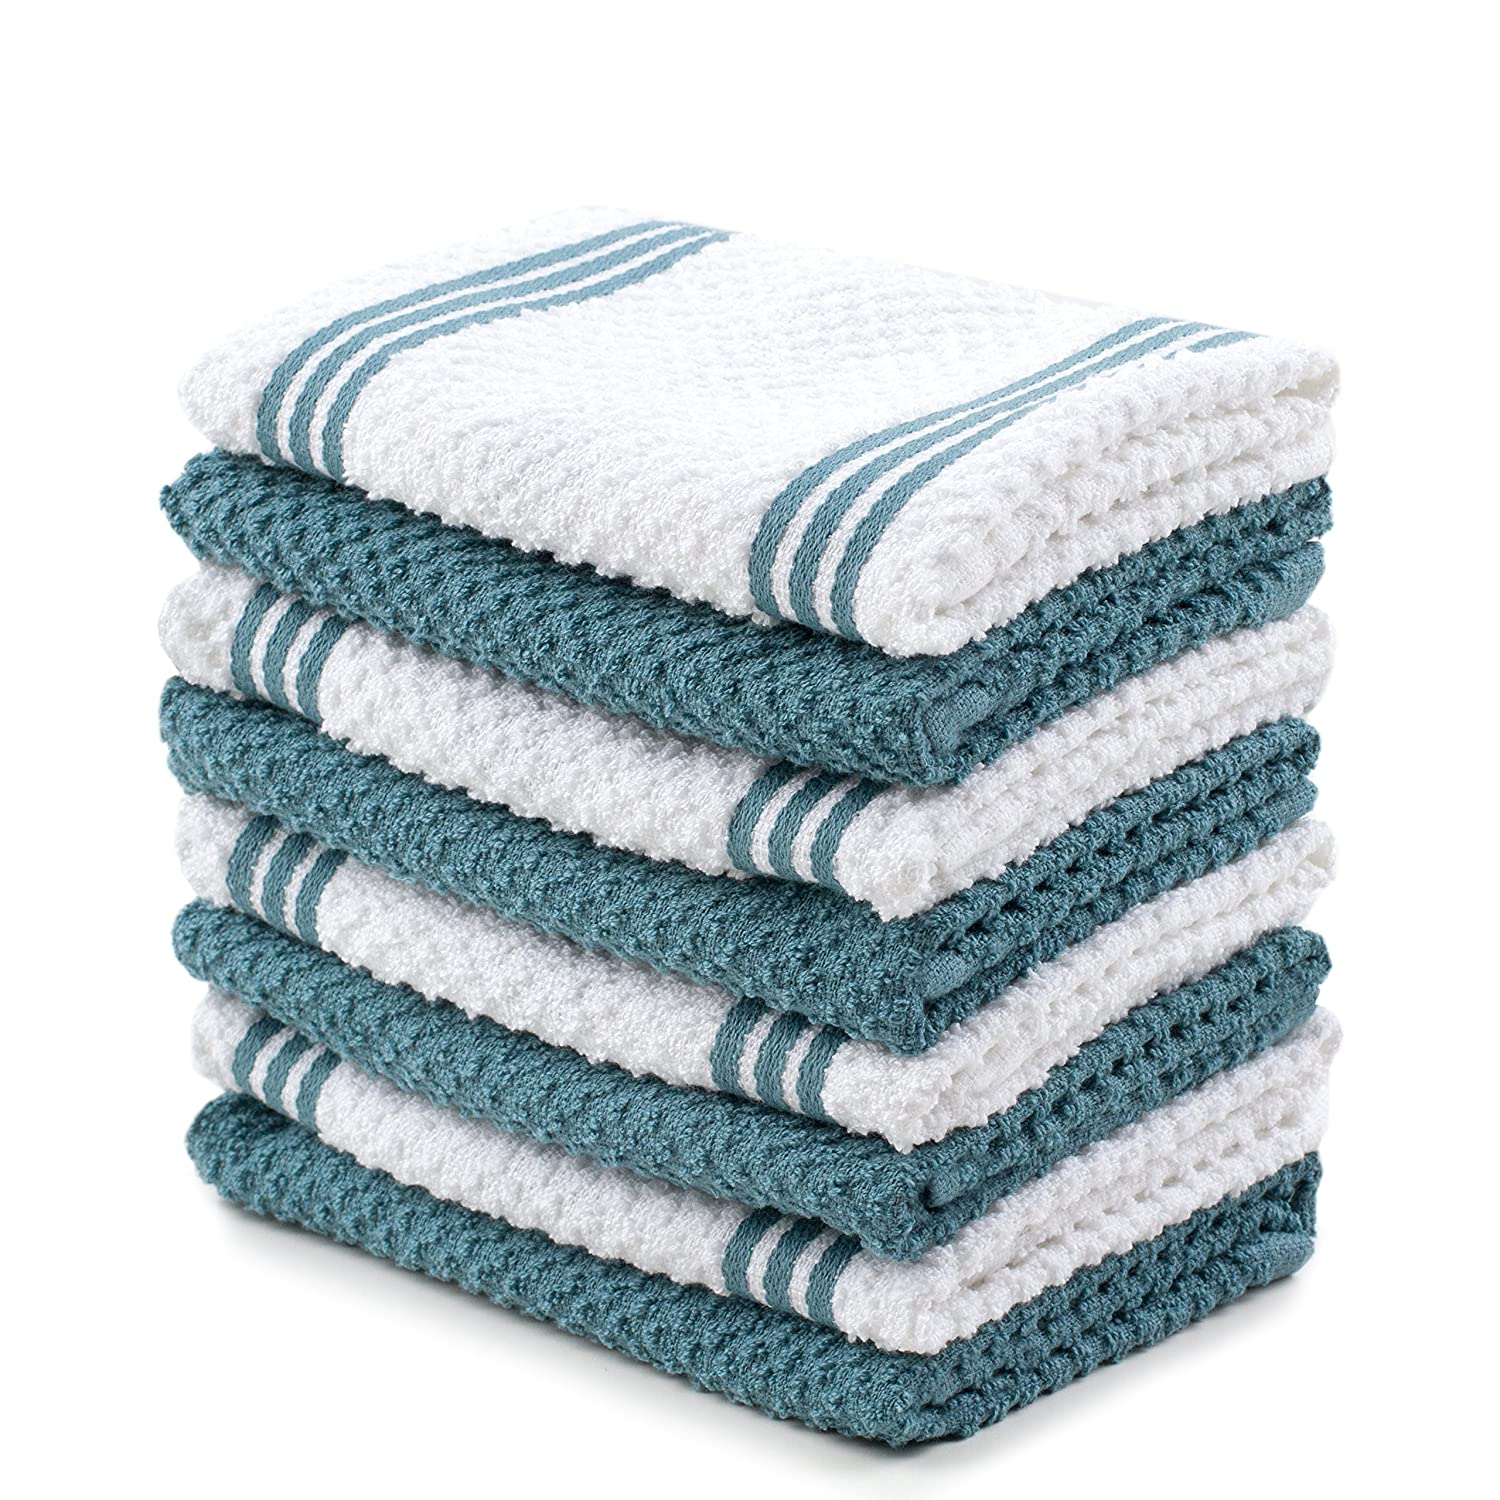 Sticky Toffee Cotton Terry Kitchen Dishcloth, Blue, 8 Pack, 12 in x 12 in